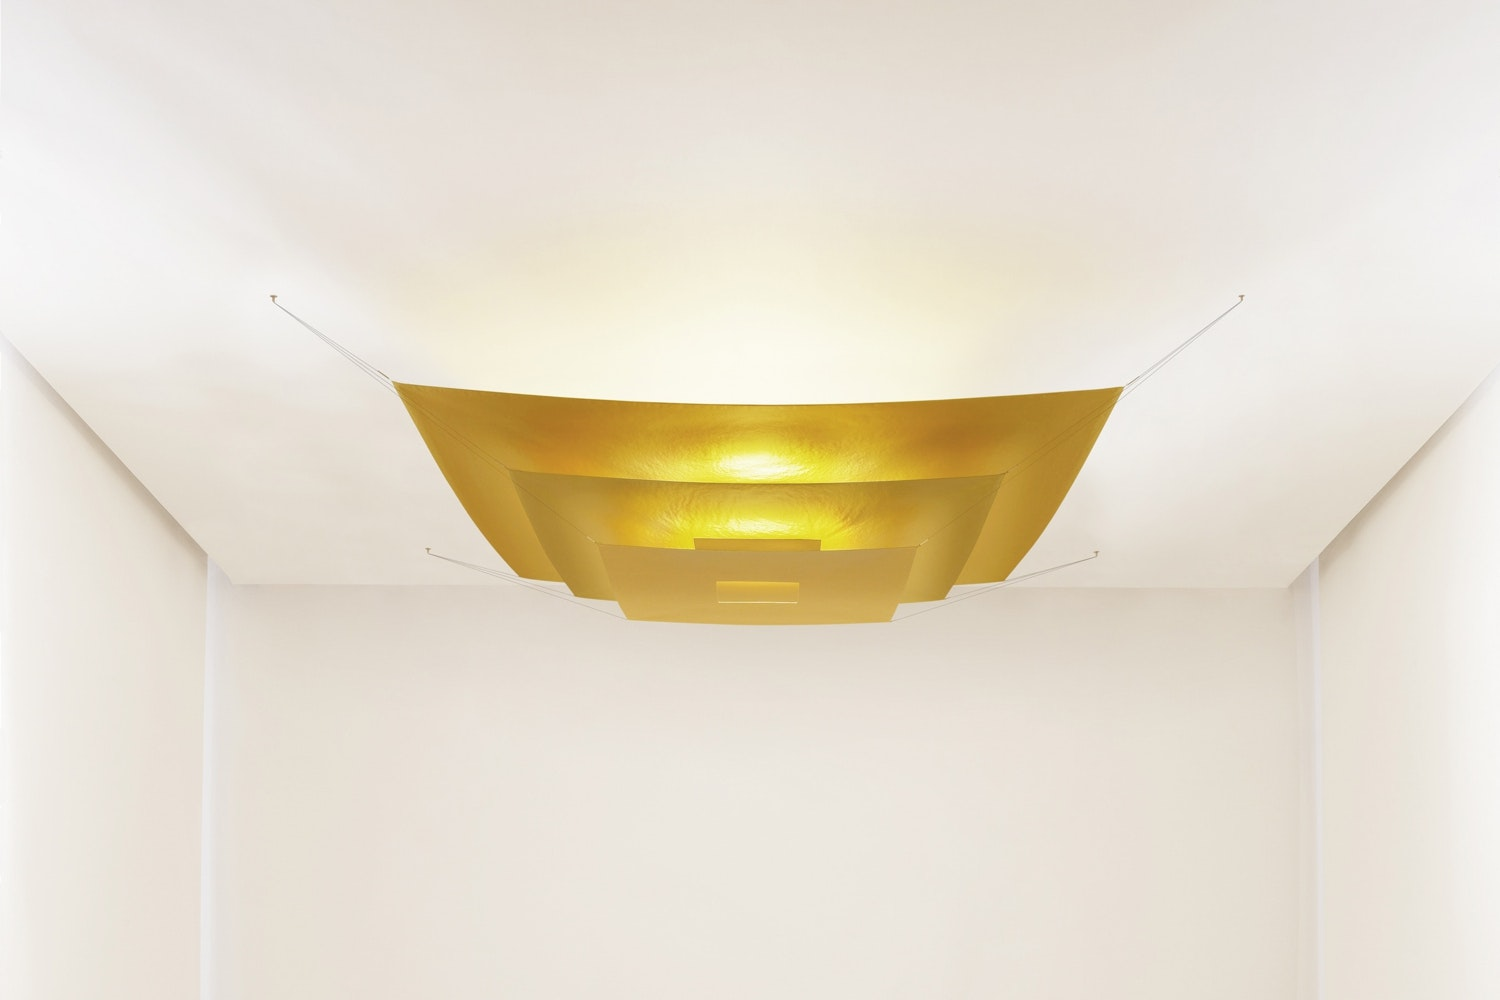 Lil Luxury Ceiling Lamp by Ingo Maurer und Team for Ingo Maurer